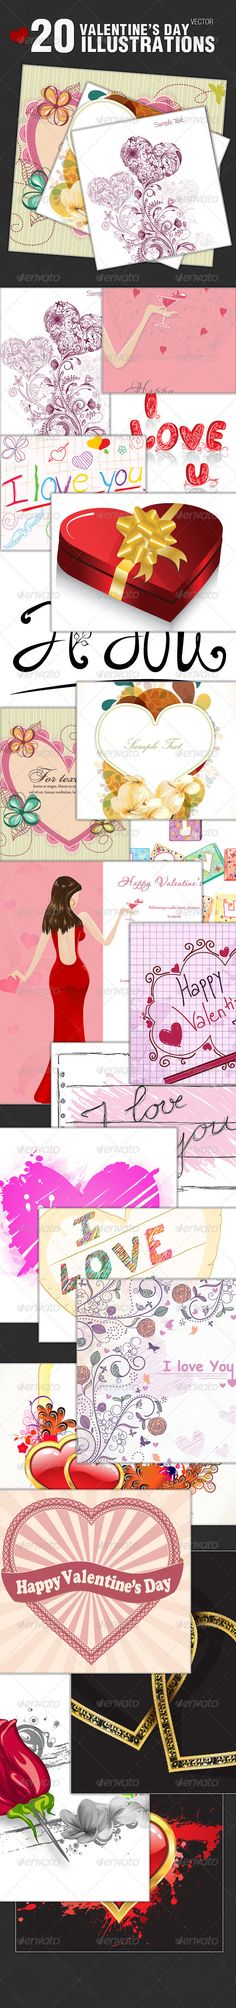 VECTOR DOWNLOAD (.ai, .psd) :: http://jquery.re/pinterest-itmid-1001452711i.html ... 20 Valentines Day Vector Illustrations ...  box, concept, day, female, floral, girl, happy, heart, i love you, illustration, lady, love, present, rose, silhouette, valentine, vector, woman  ... Vectors Graphics Design Illustration Isolated Vector Templates Textures Stock Business Realistic eCommerce Wordpress Infographics Element Print Webdesign ... DOWNLOAD…